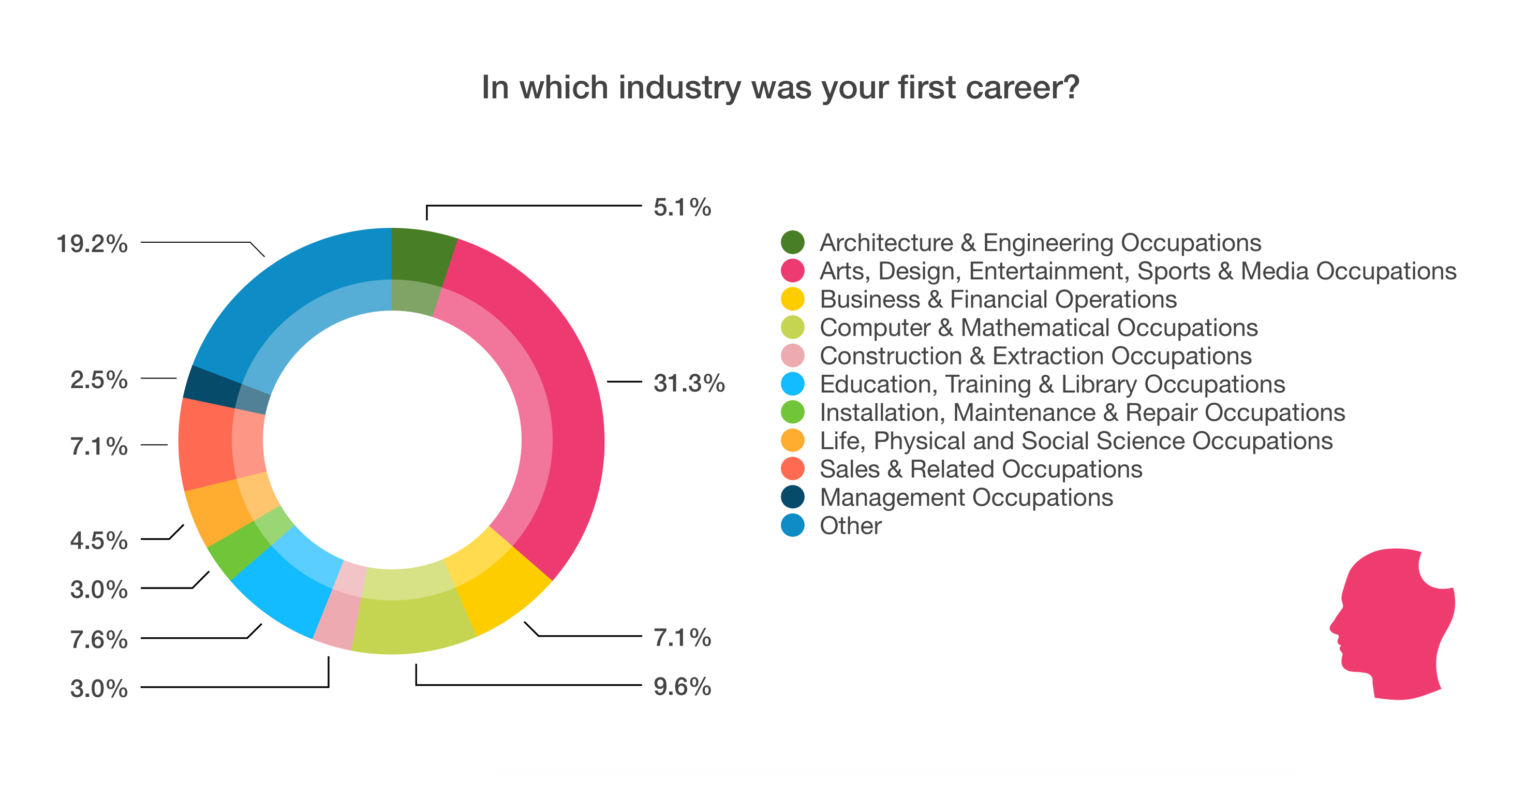 Which industry was your first career